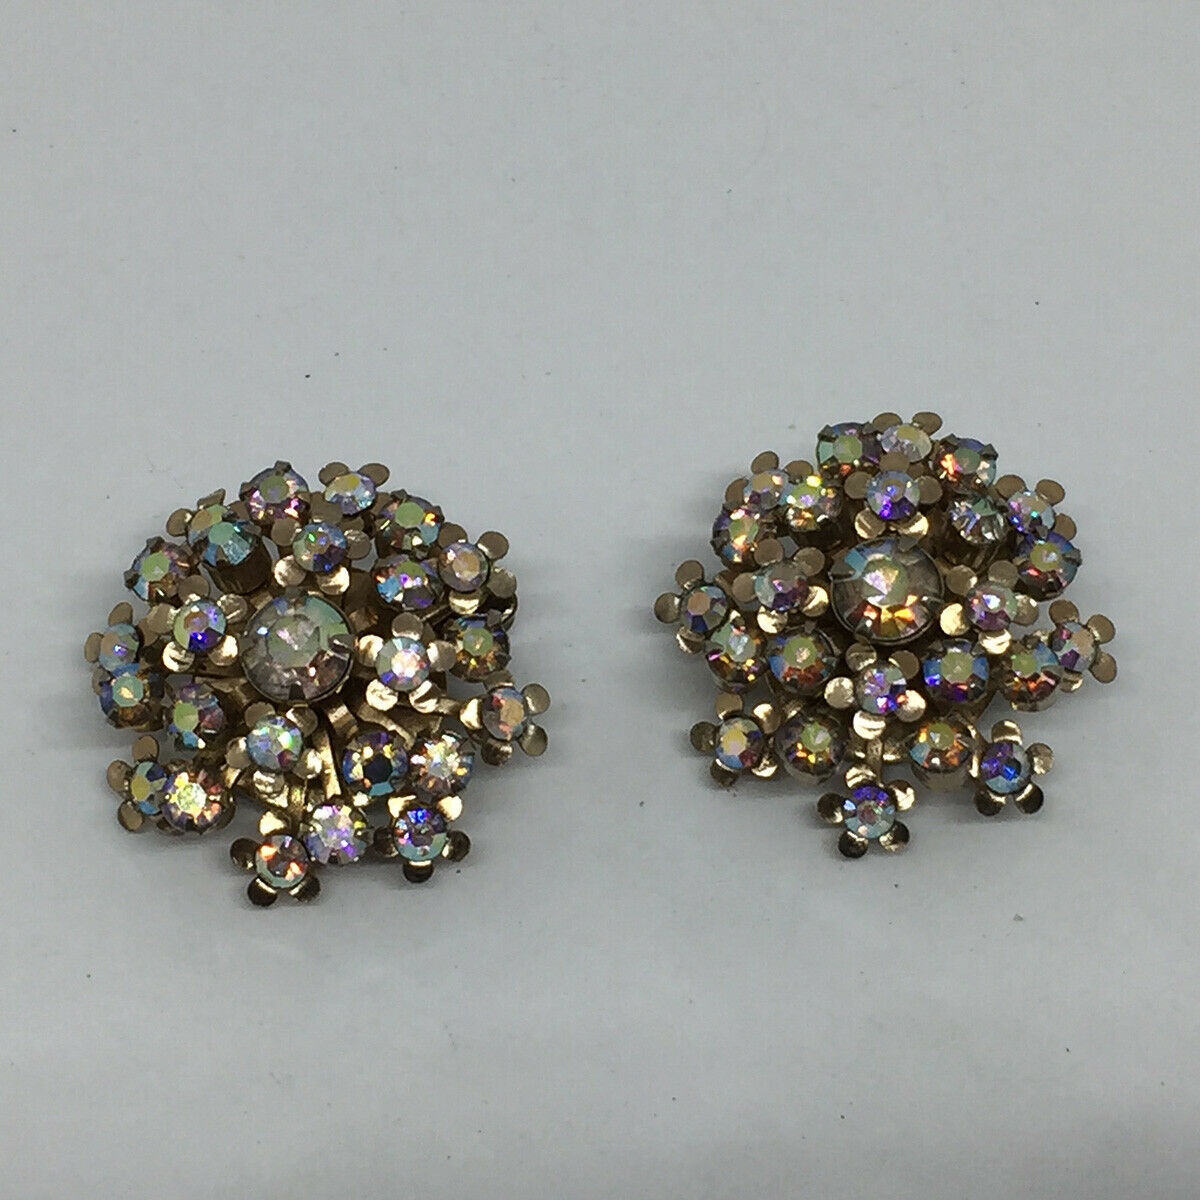 Vintage Signed Weiss Aurora Borealis Silver Tone Clip Earrings Stunning!